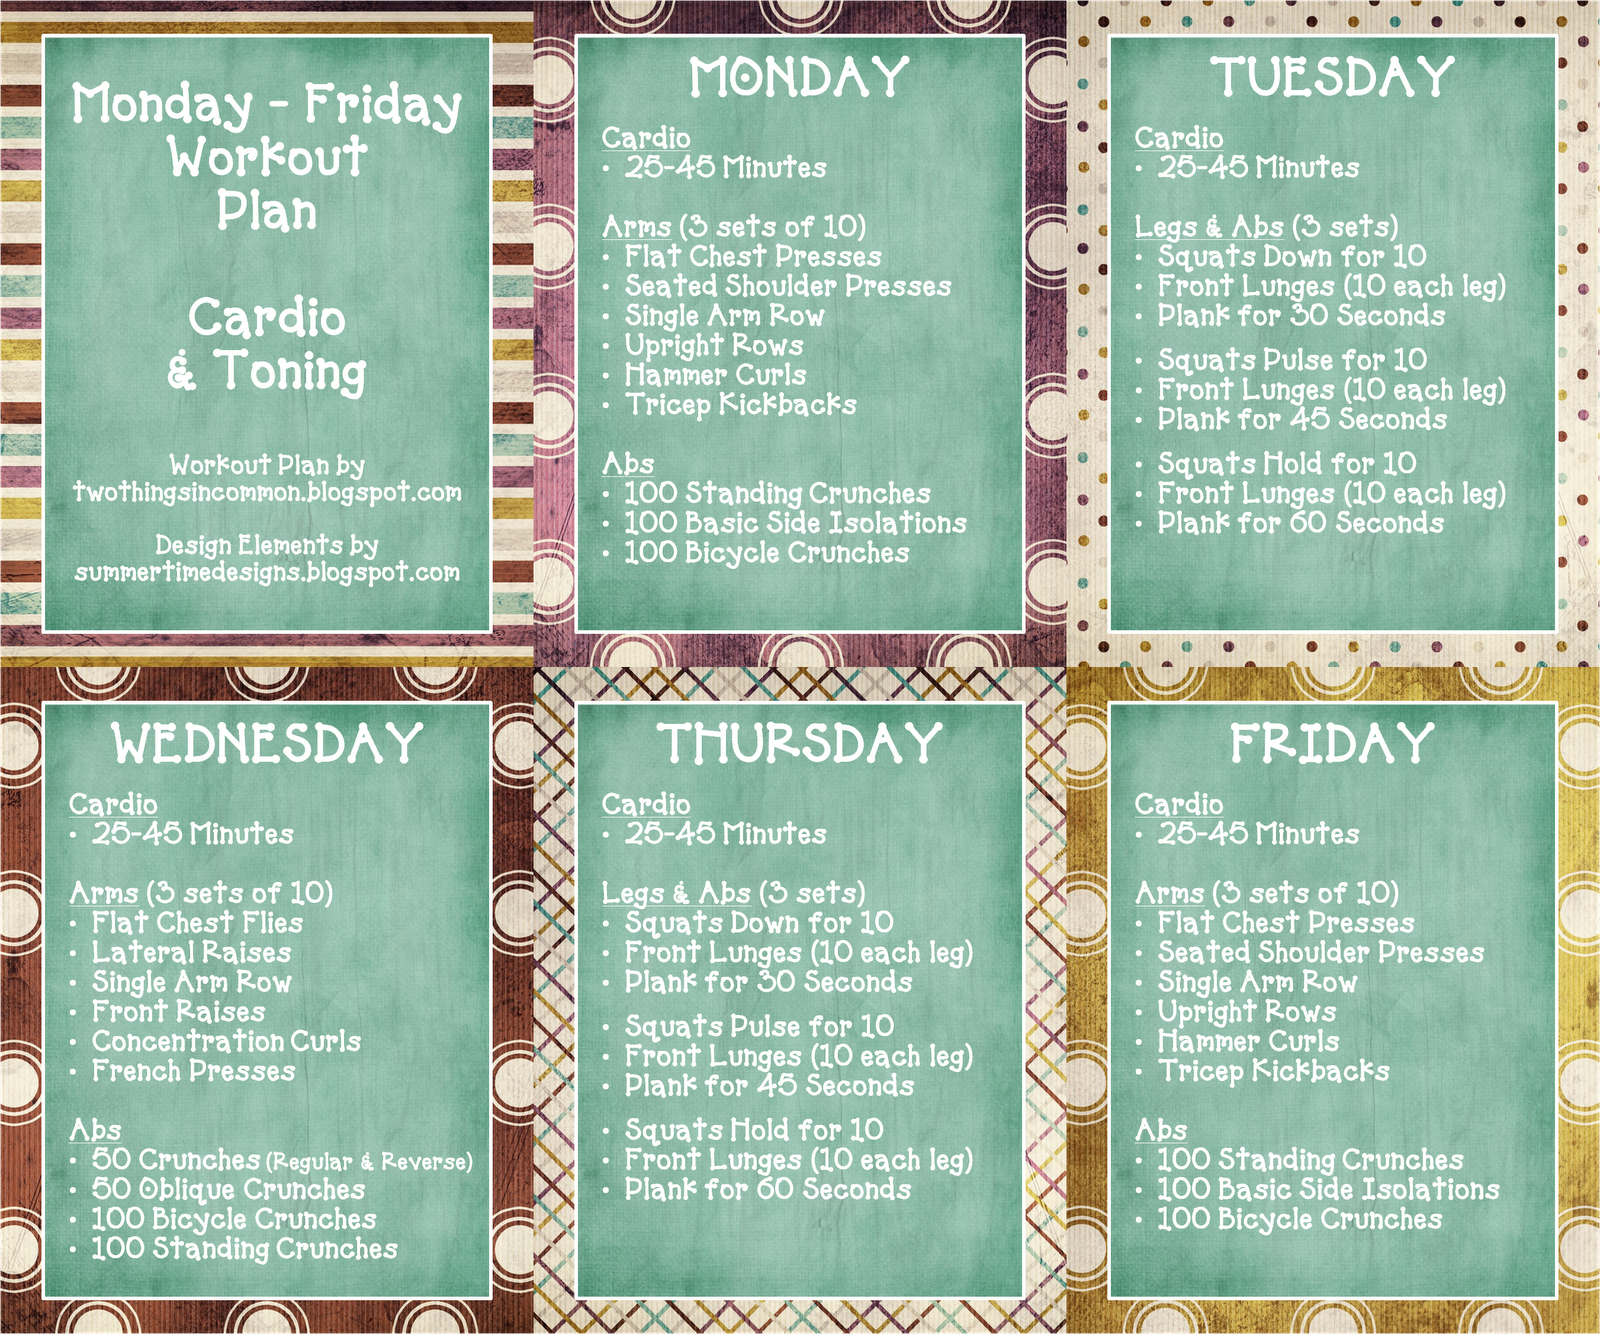 Daily Workout Schedule For Women You Can Find A Printable Copy Of My M F Workout